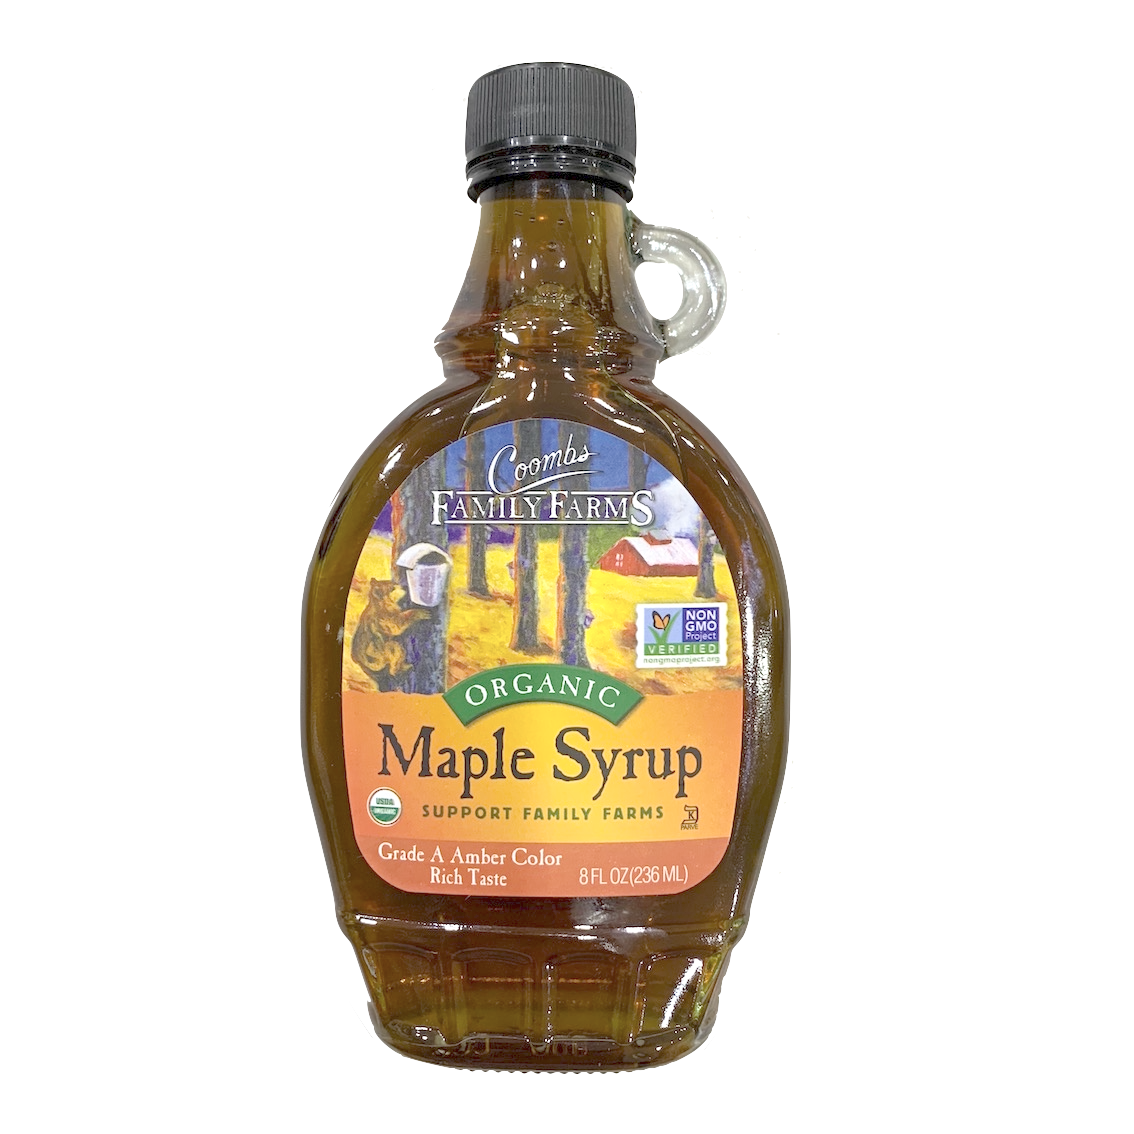 Coombs Family Farms Organic Maple Syrup